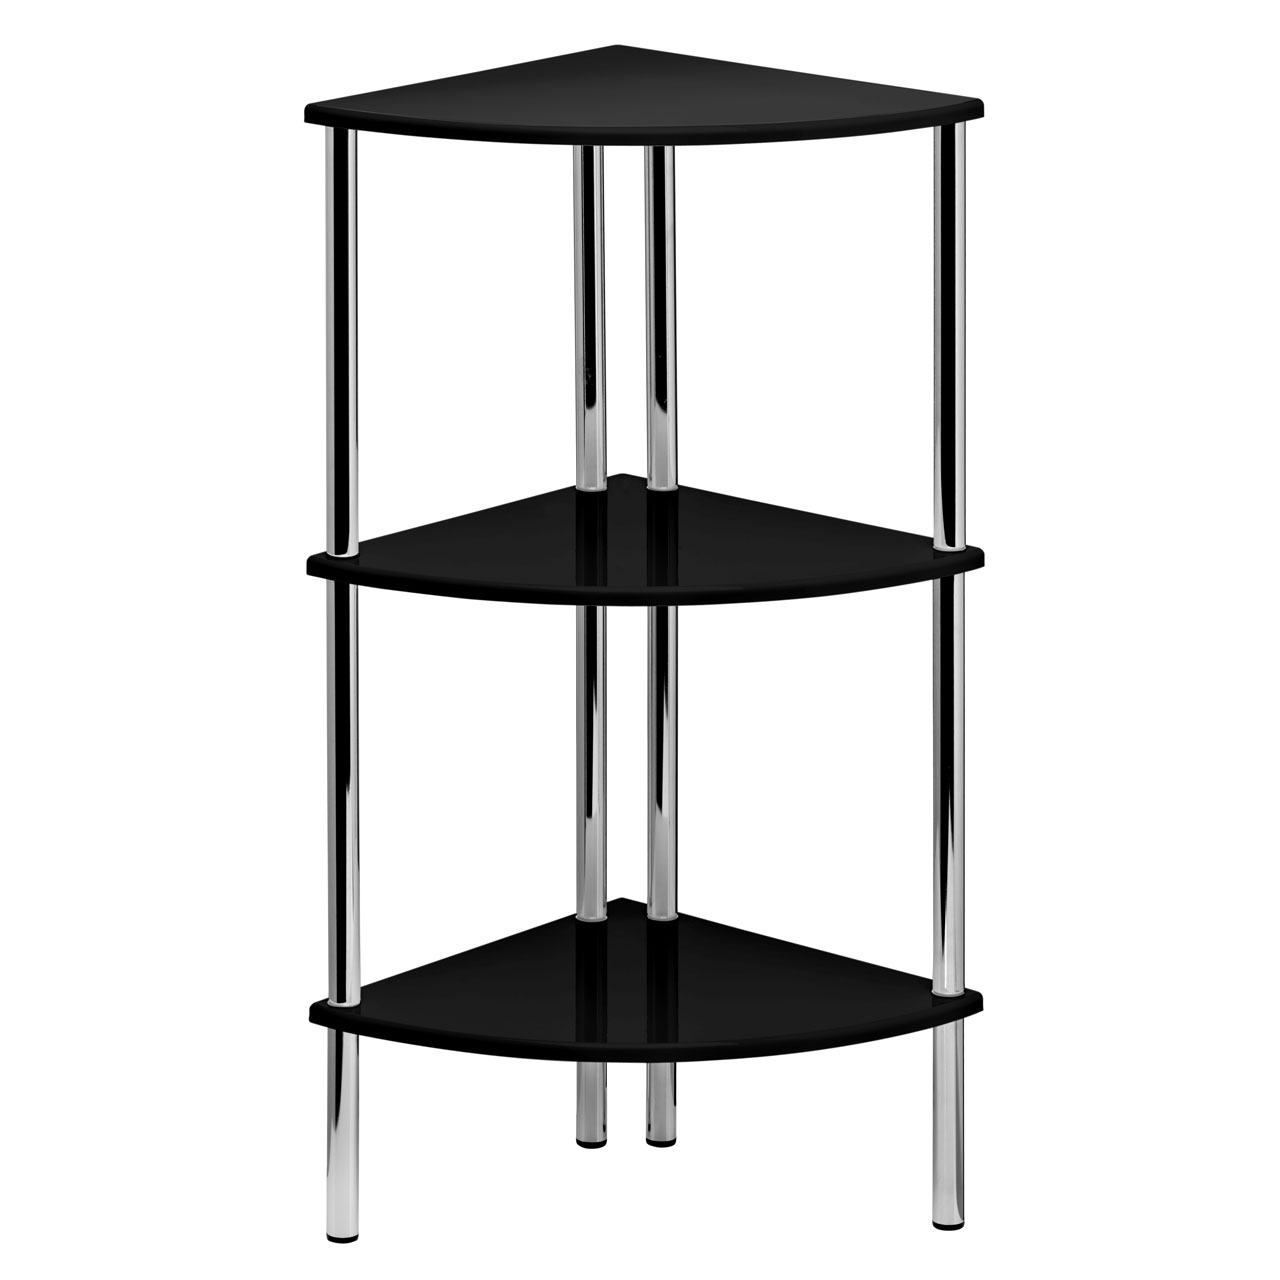 78cm High Gloss Corner Shelf Display Unit 3 Tier Shelves